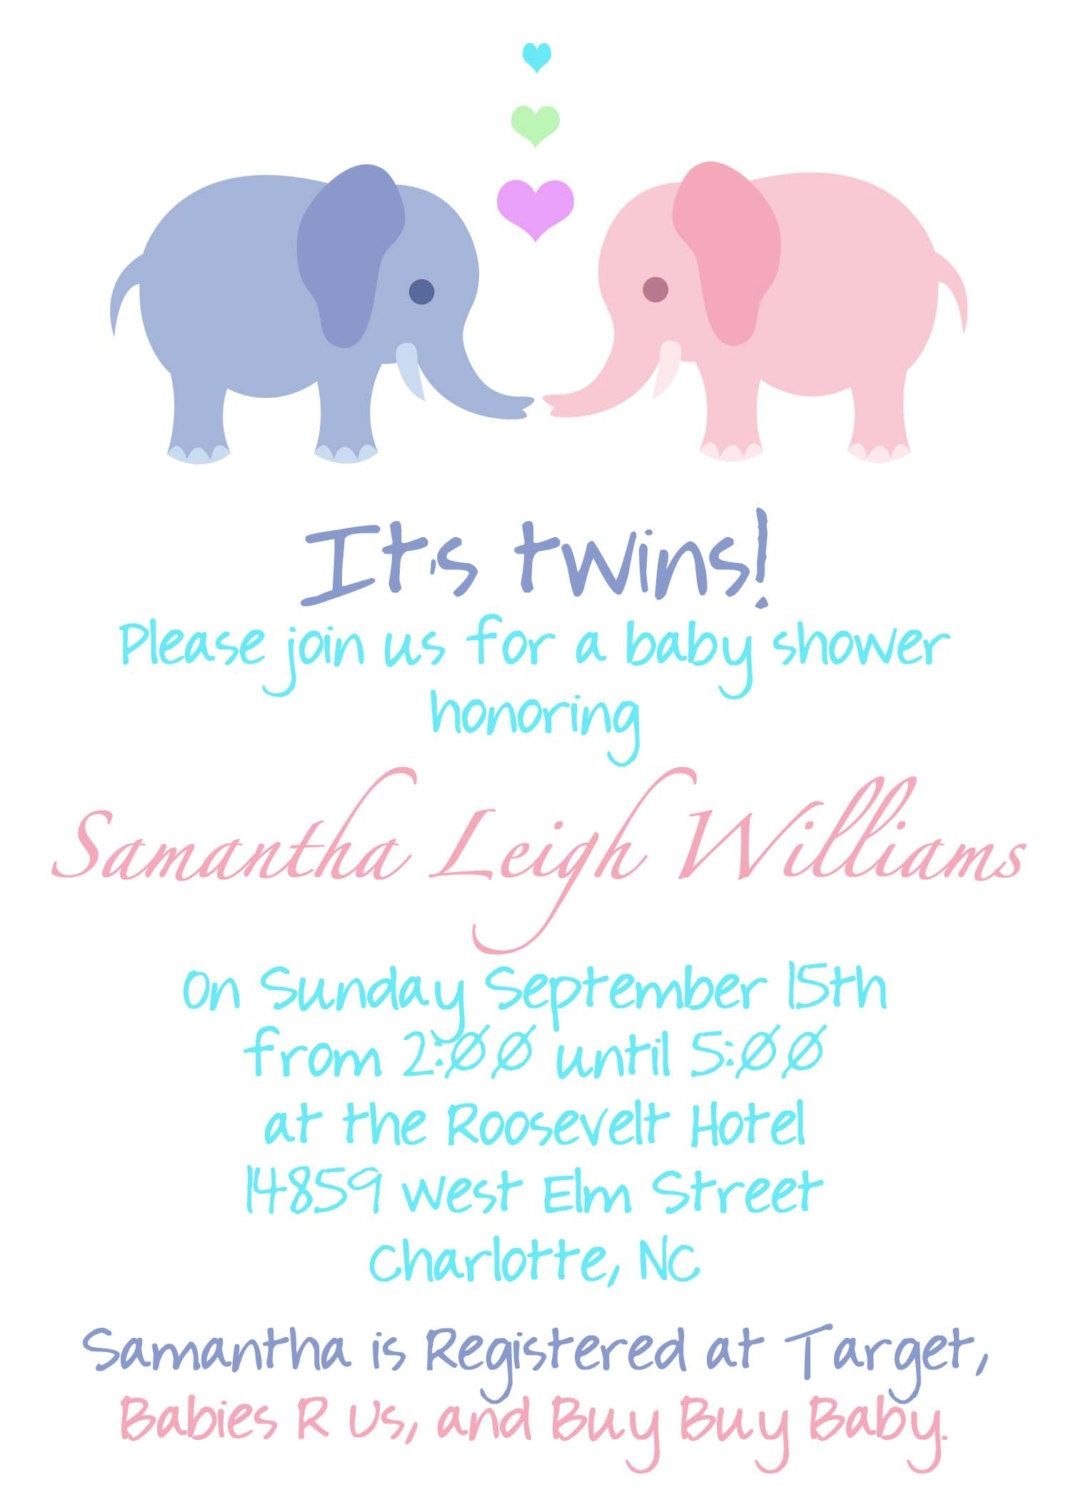 Twin pregnancy announcement wording baby shower invitation baby shower invitations white style design ideastwin baby shower invitations very best twin baby shower invitations ideas twin baby shower invitation filmwisefo Gallery